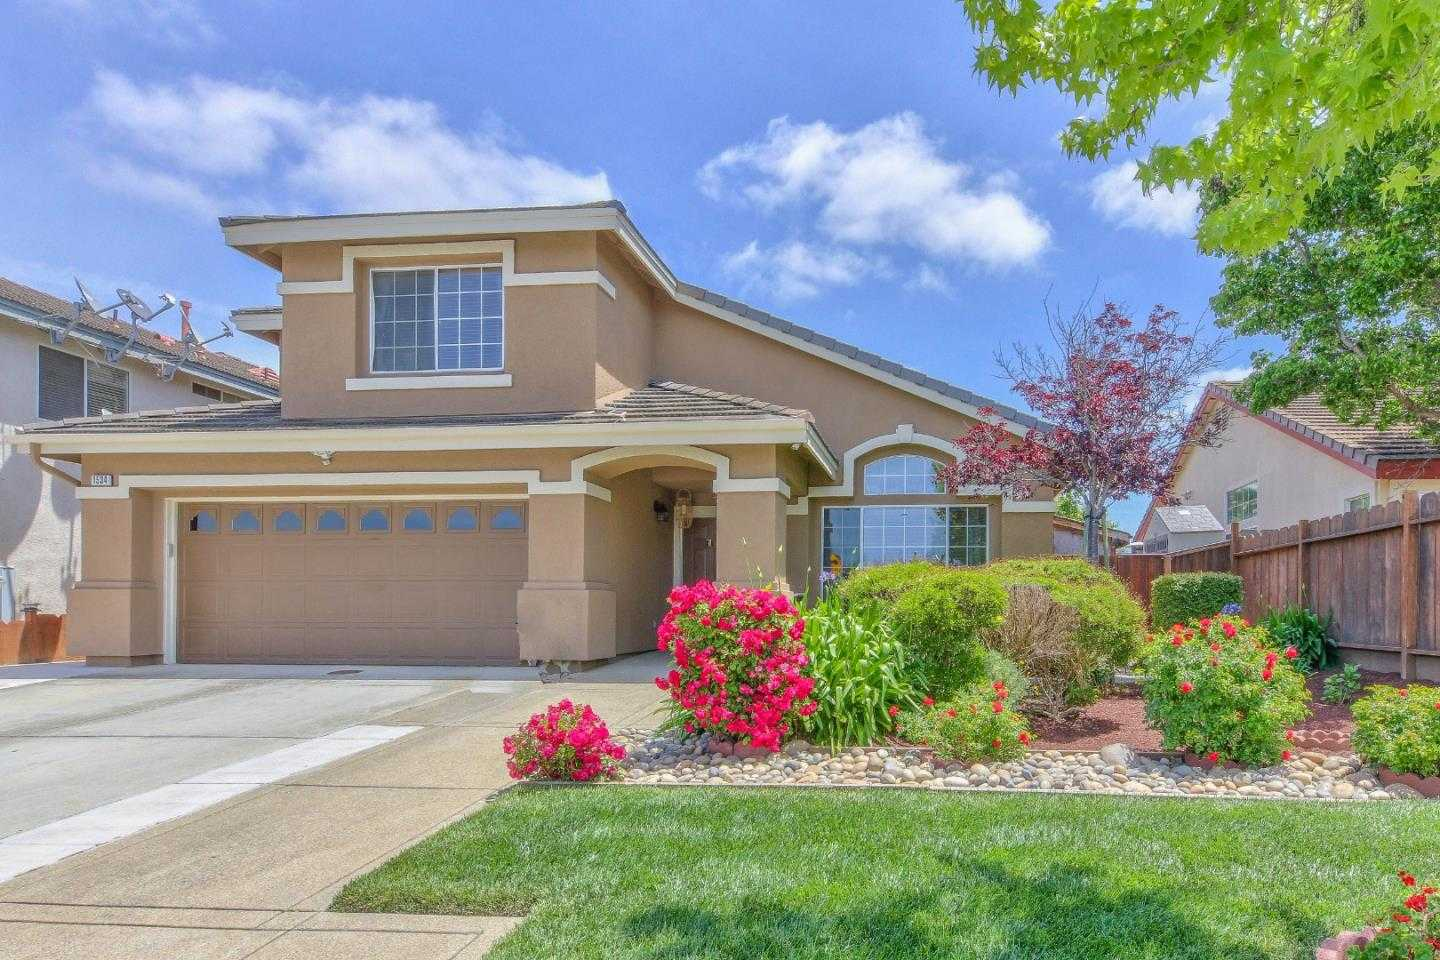 $587,000 - 4Br/3Ba -  for Sale in Salinas